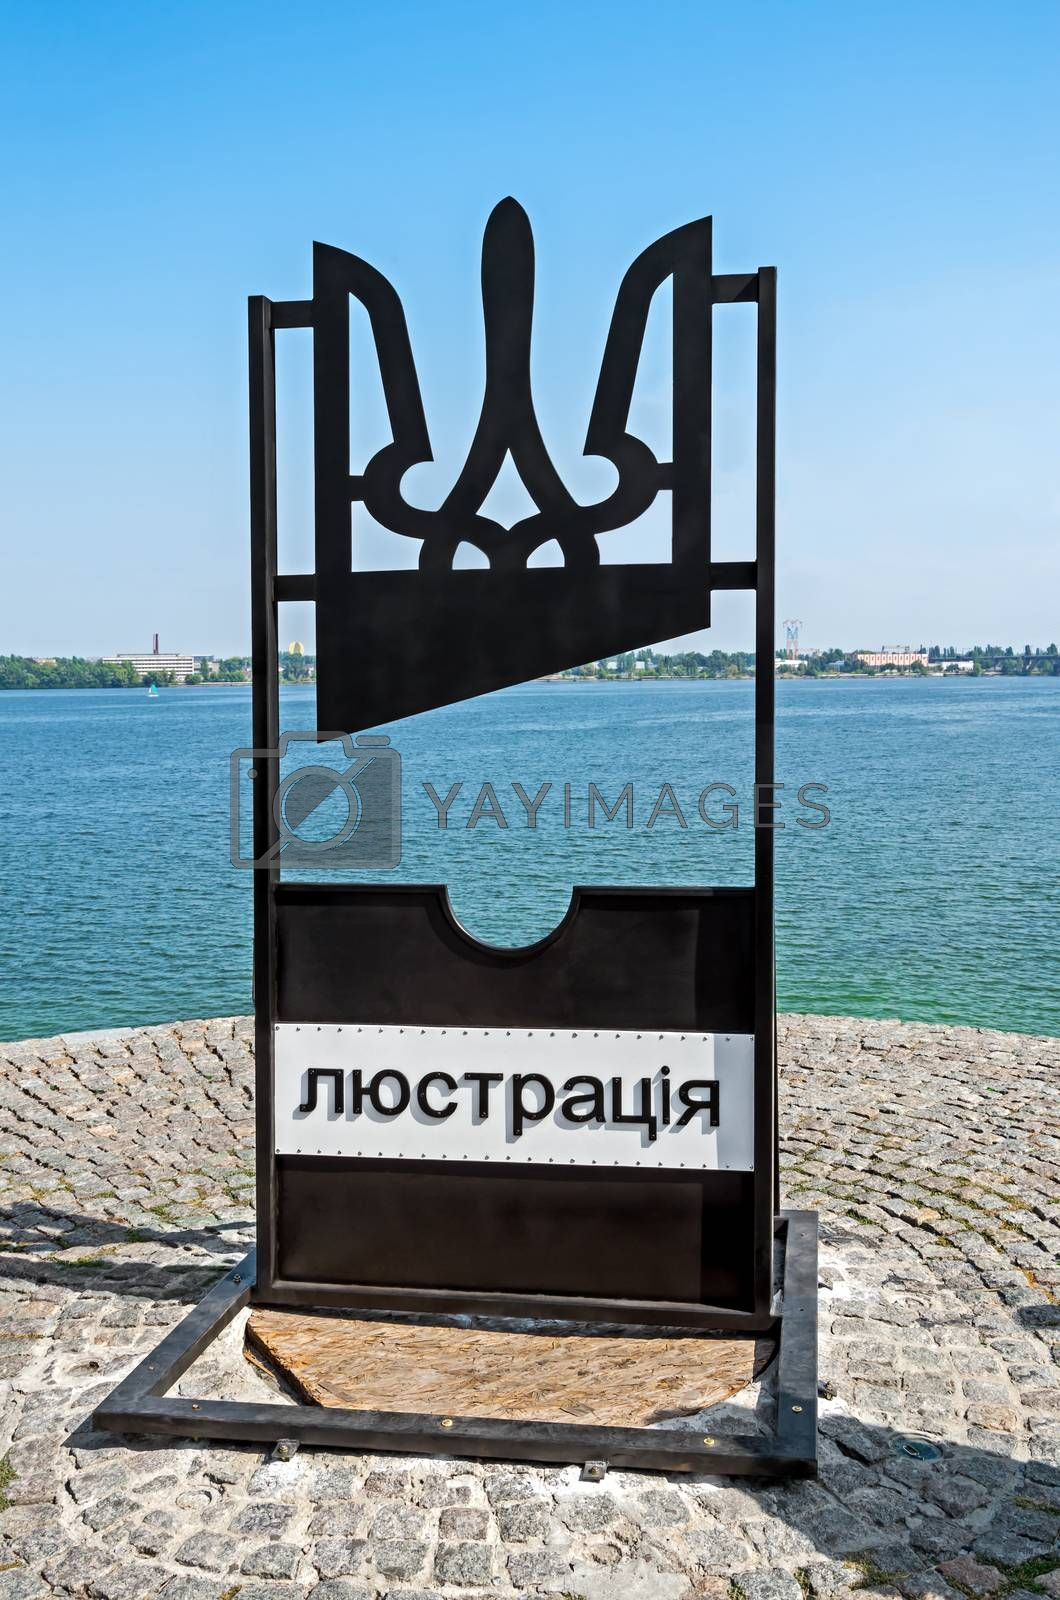 Improvised lustration guillotine which appeared in Ukraine after the dignity revolution in 2014. Inscription in the Ukrainian language reads - Lustration